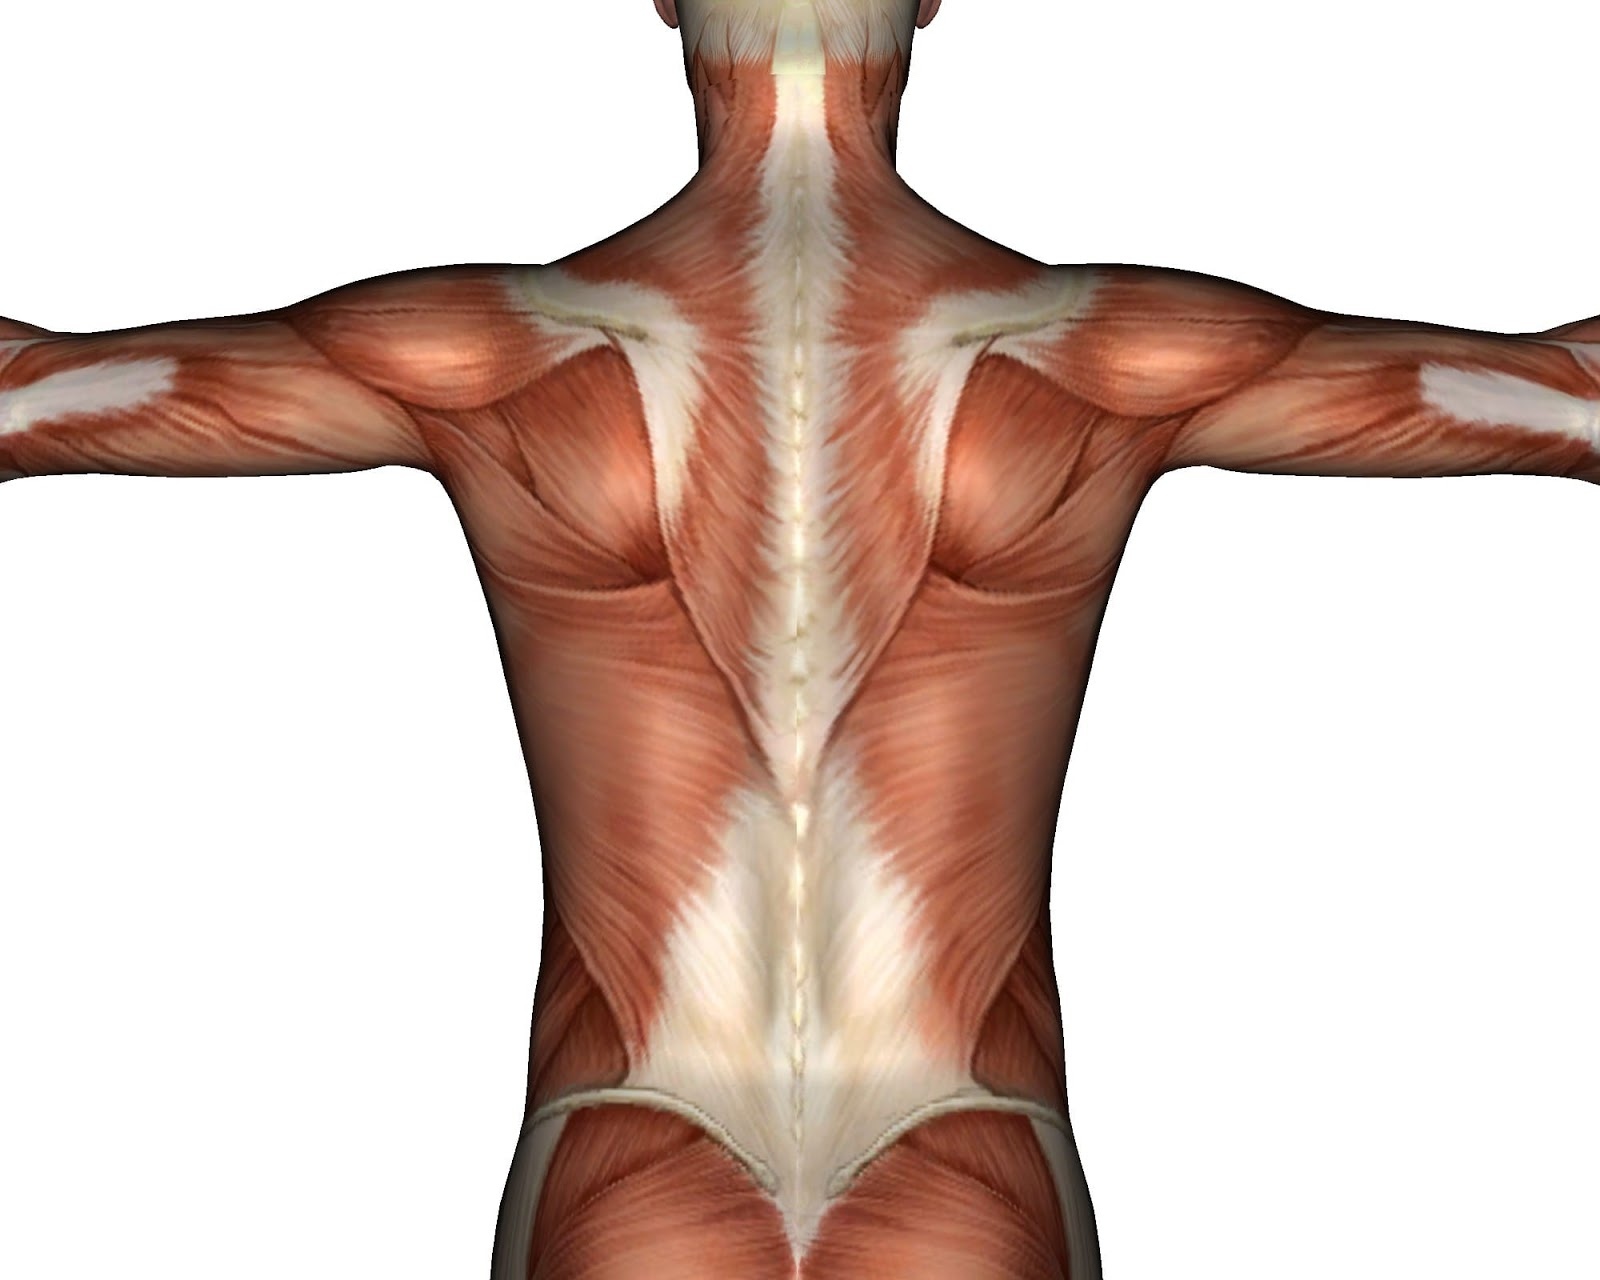 hight resolution of therefore it is not uncommon for pain to occur in the middle or lower back regions stemming from thoracolumbar fascia injury